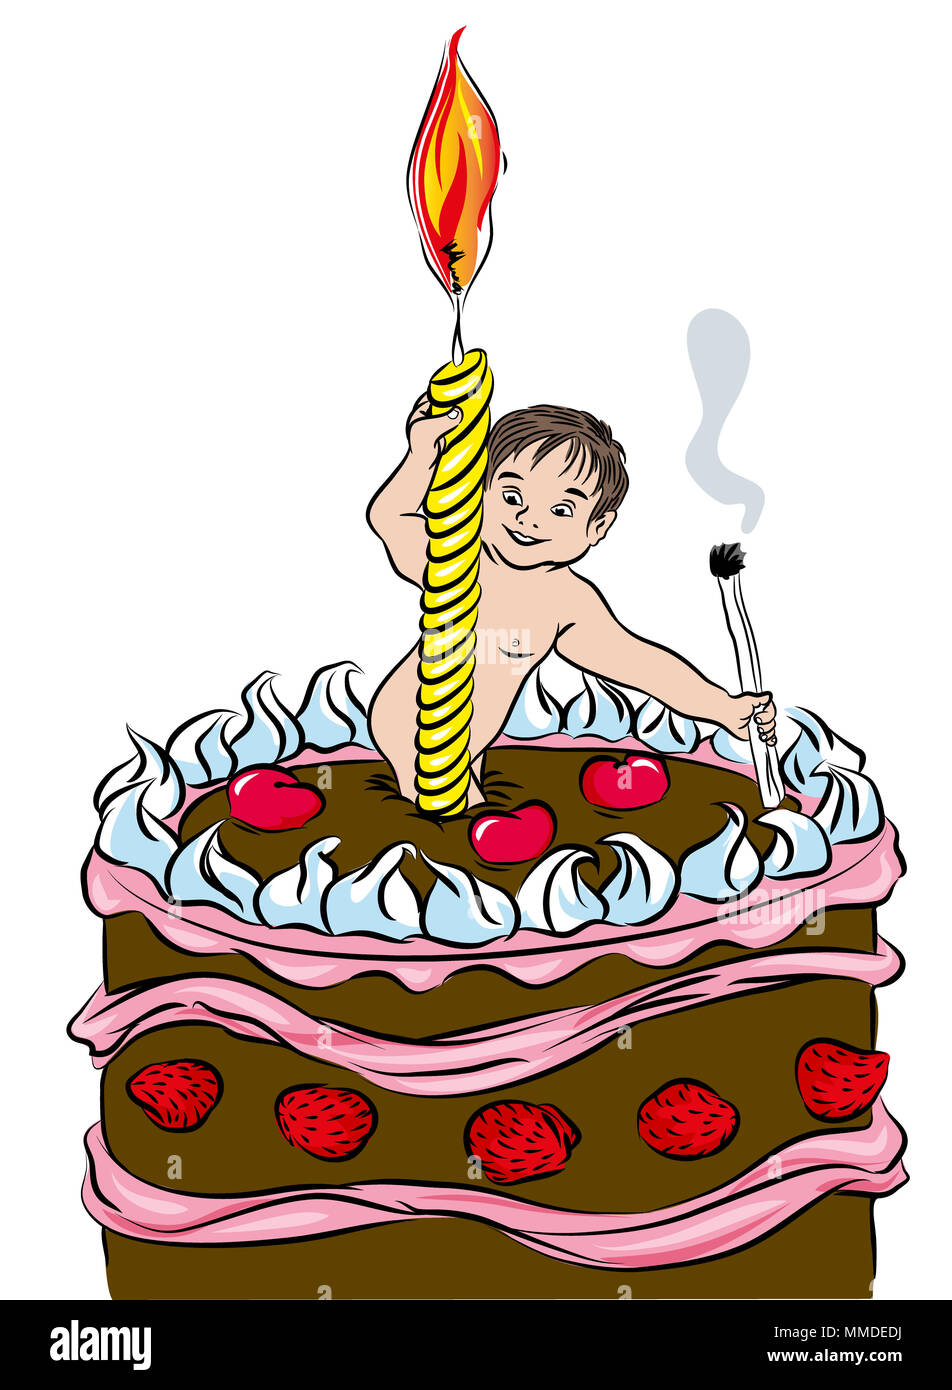 First birthday cake.   Happy First Birthday Cake with Candle and baby. Baby holding matchstick in birthday cake. illustration  first birthday postcard - Stock Image